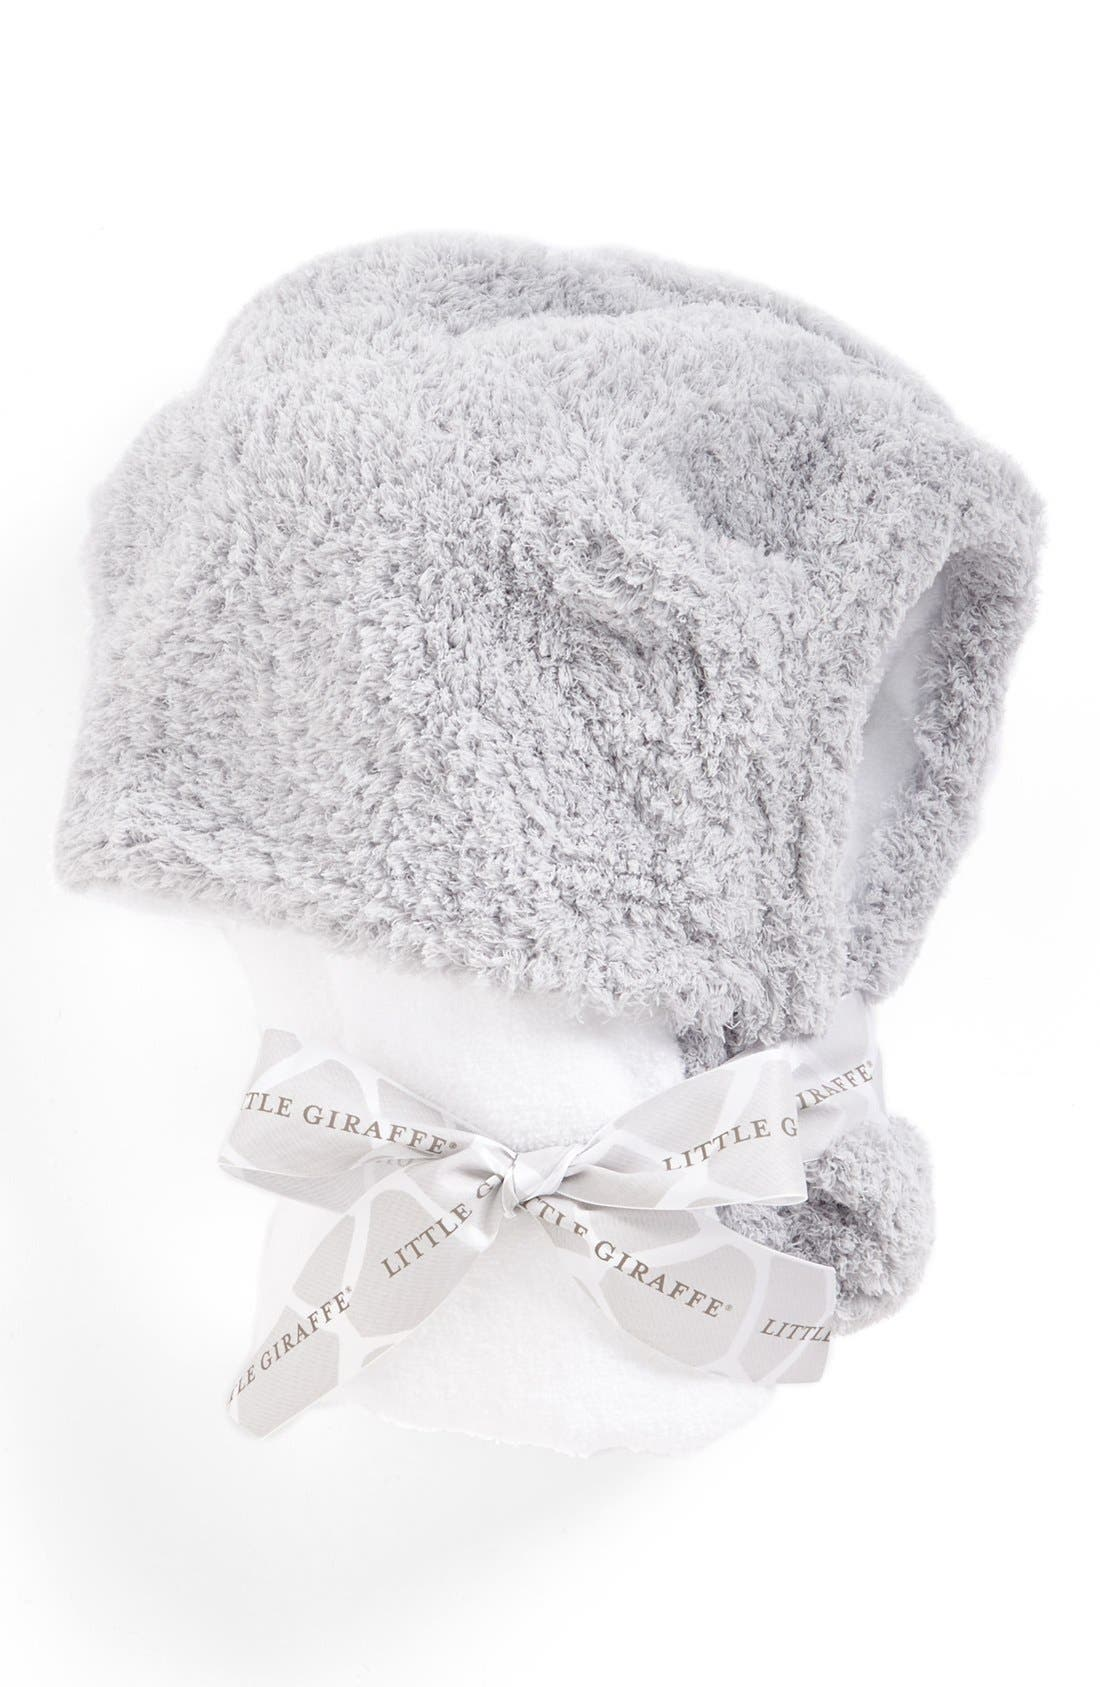 Chenille Hooded Towel,                         Main,                         color, 040